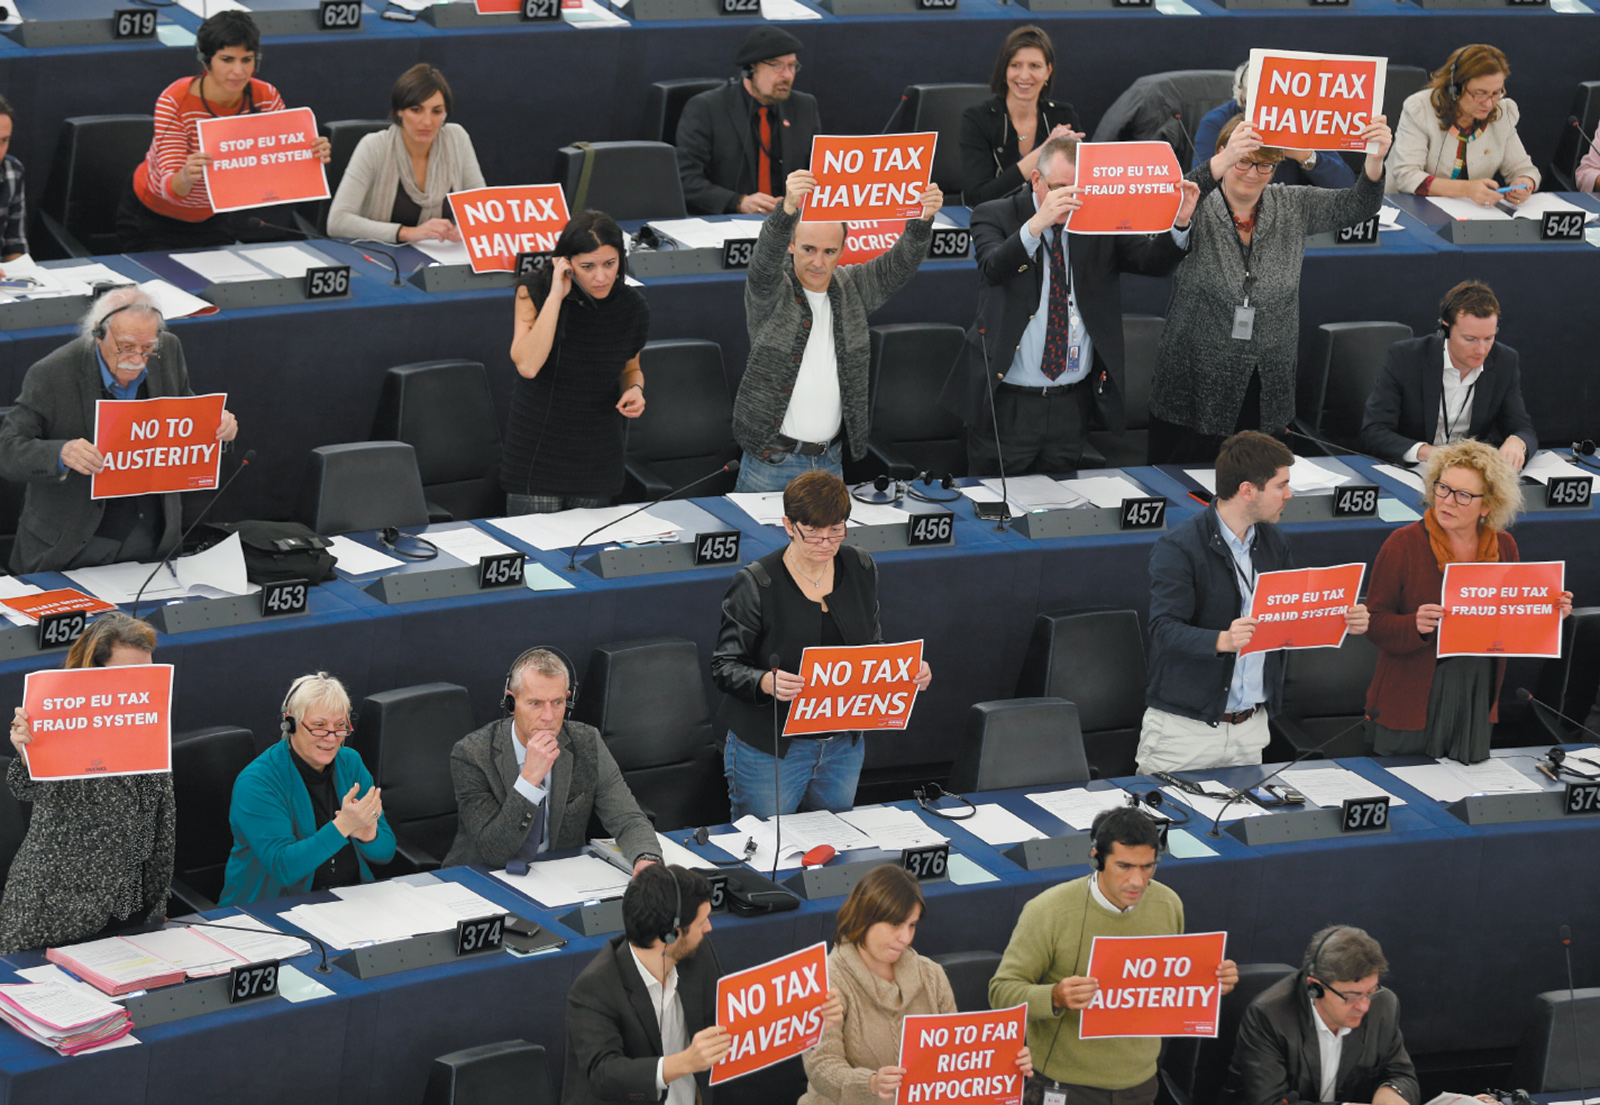 Members of the European Parliament in Strasbourg, France, holding signs in support of a motion to censure the European Commission under Jean-Claude Juncker because of the aggressive tax-avoidance policies pursued by Luxembourg while Juncker was prime minister, November 2014